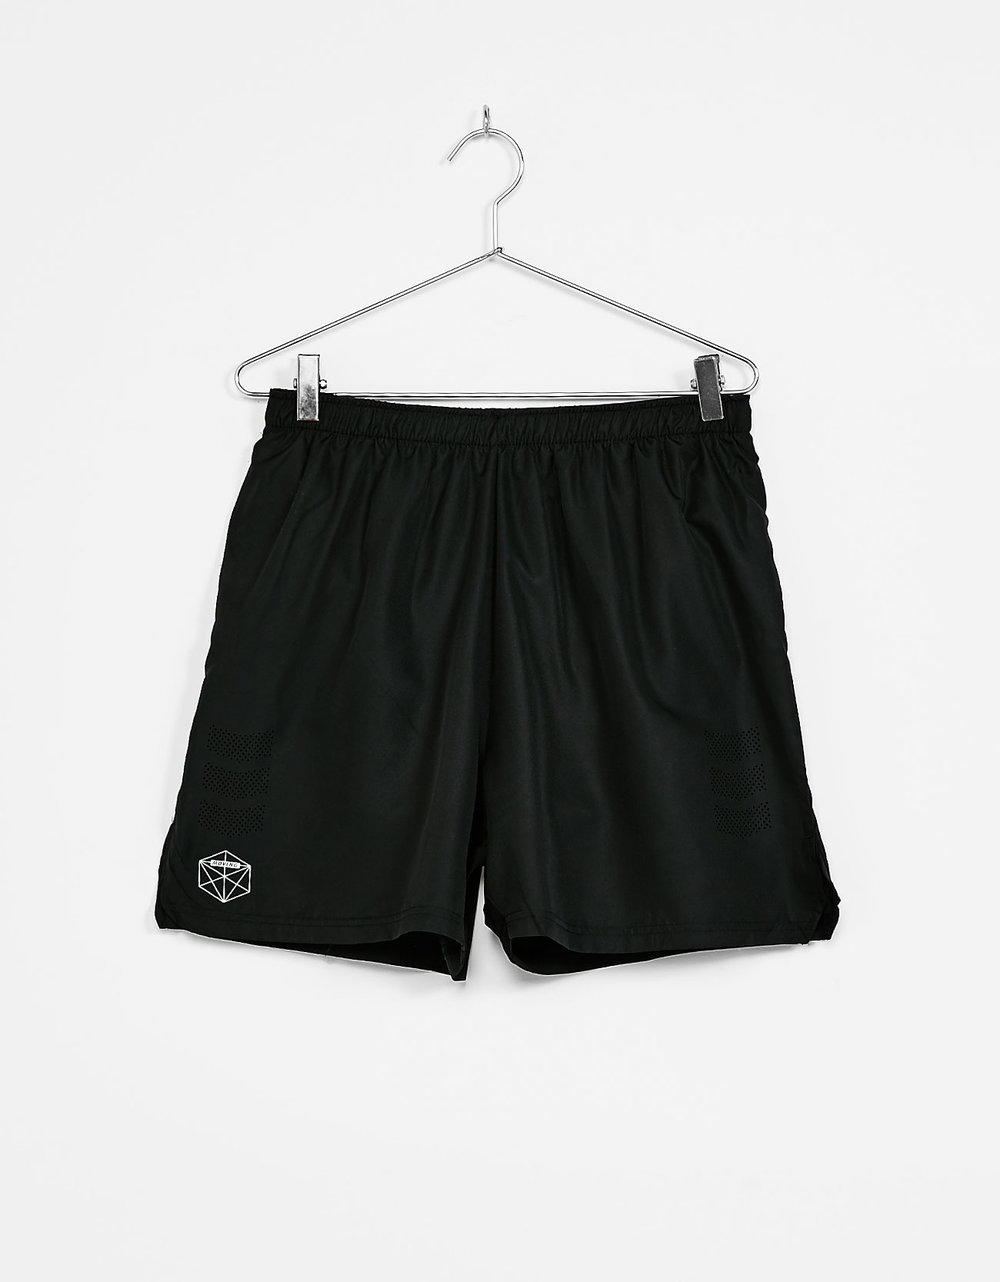 Sports Bermuda shorts with reflective detail, £15.99